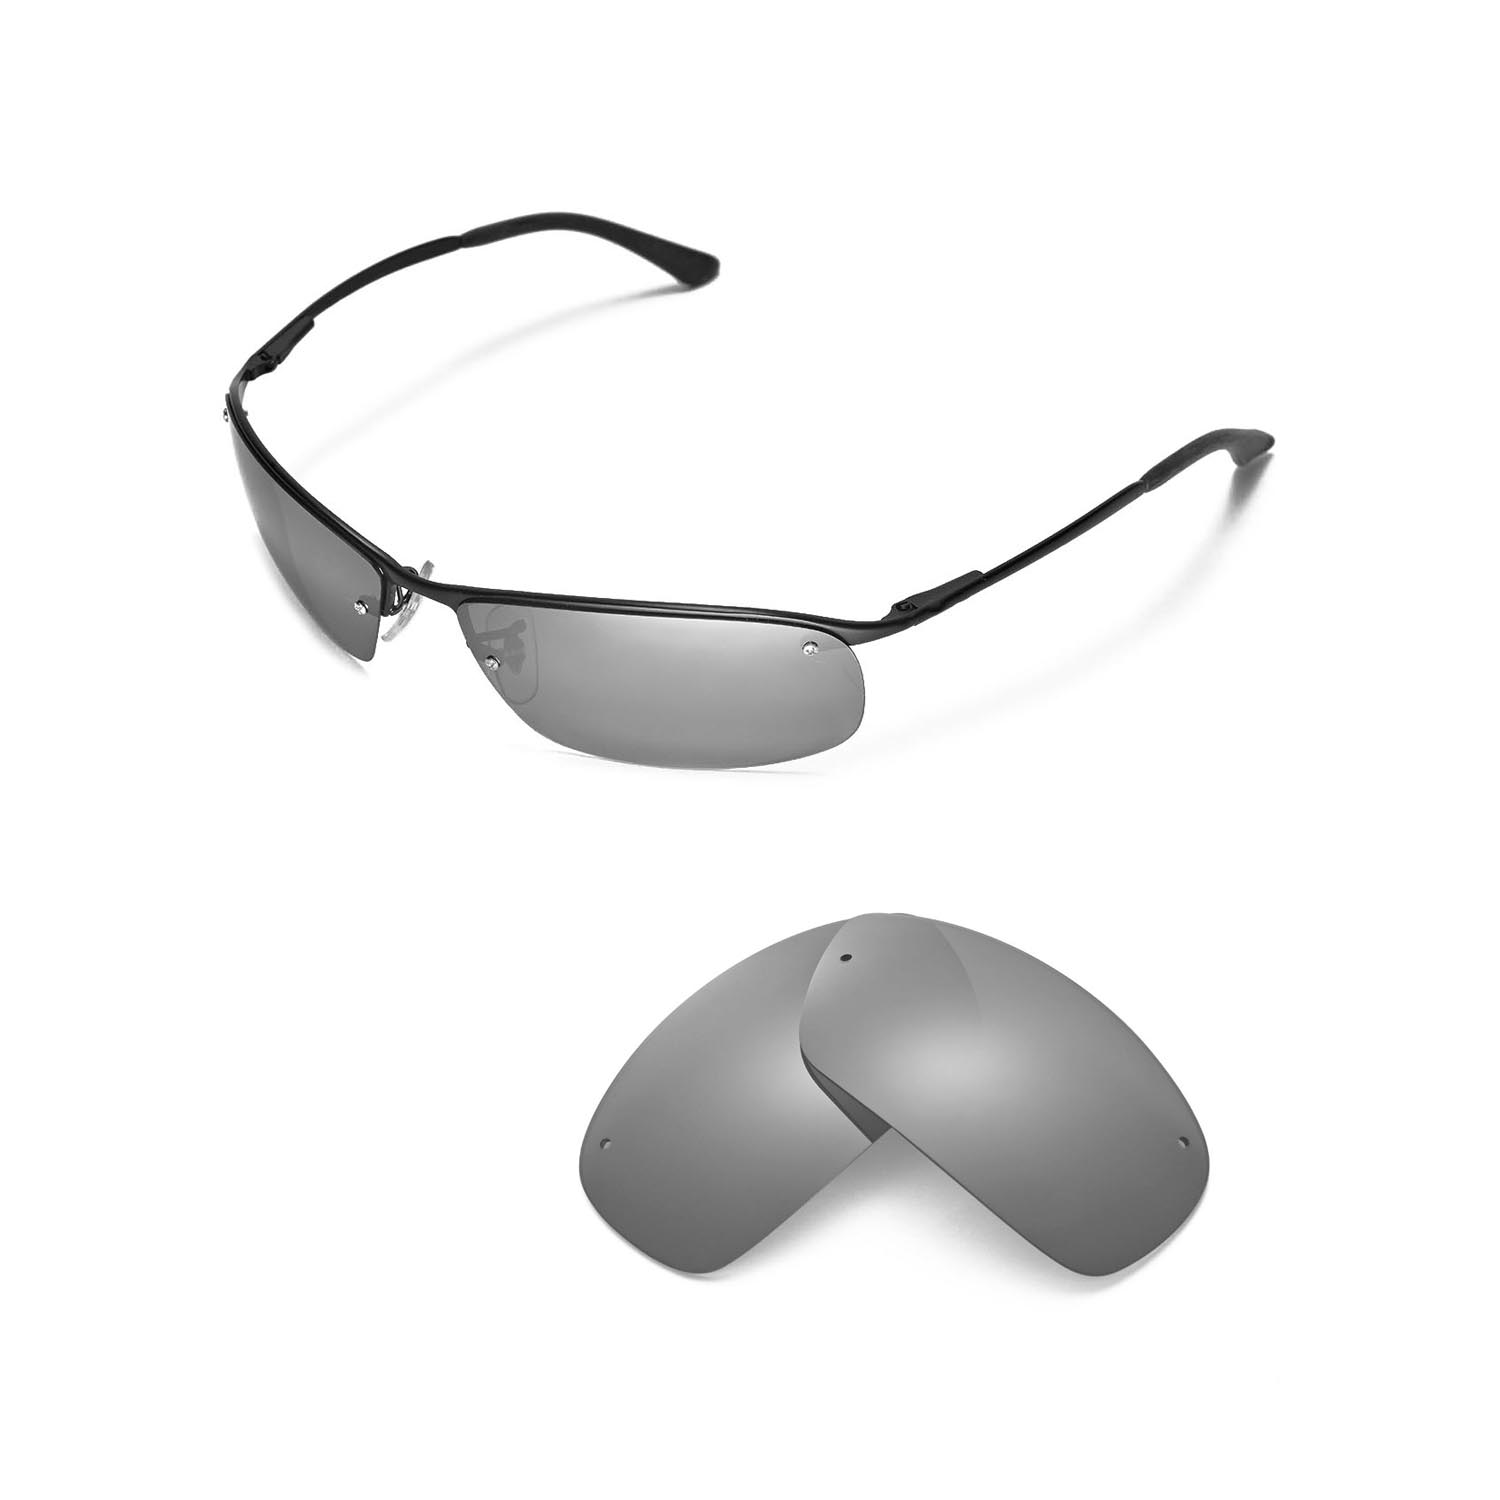 491d20b58b Details about New Walleva Polarized Titanium Replacement For Ray-Ban RB3183  63mm